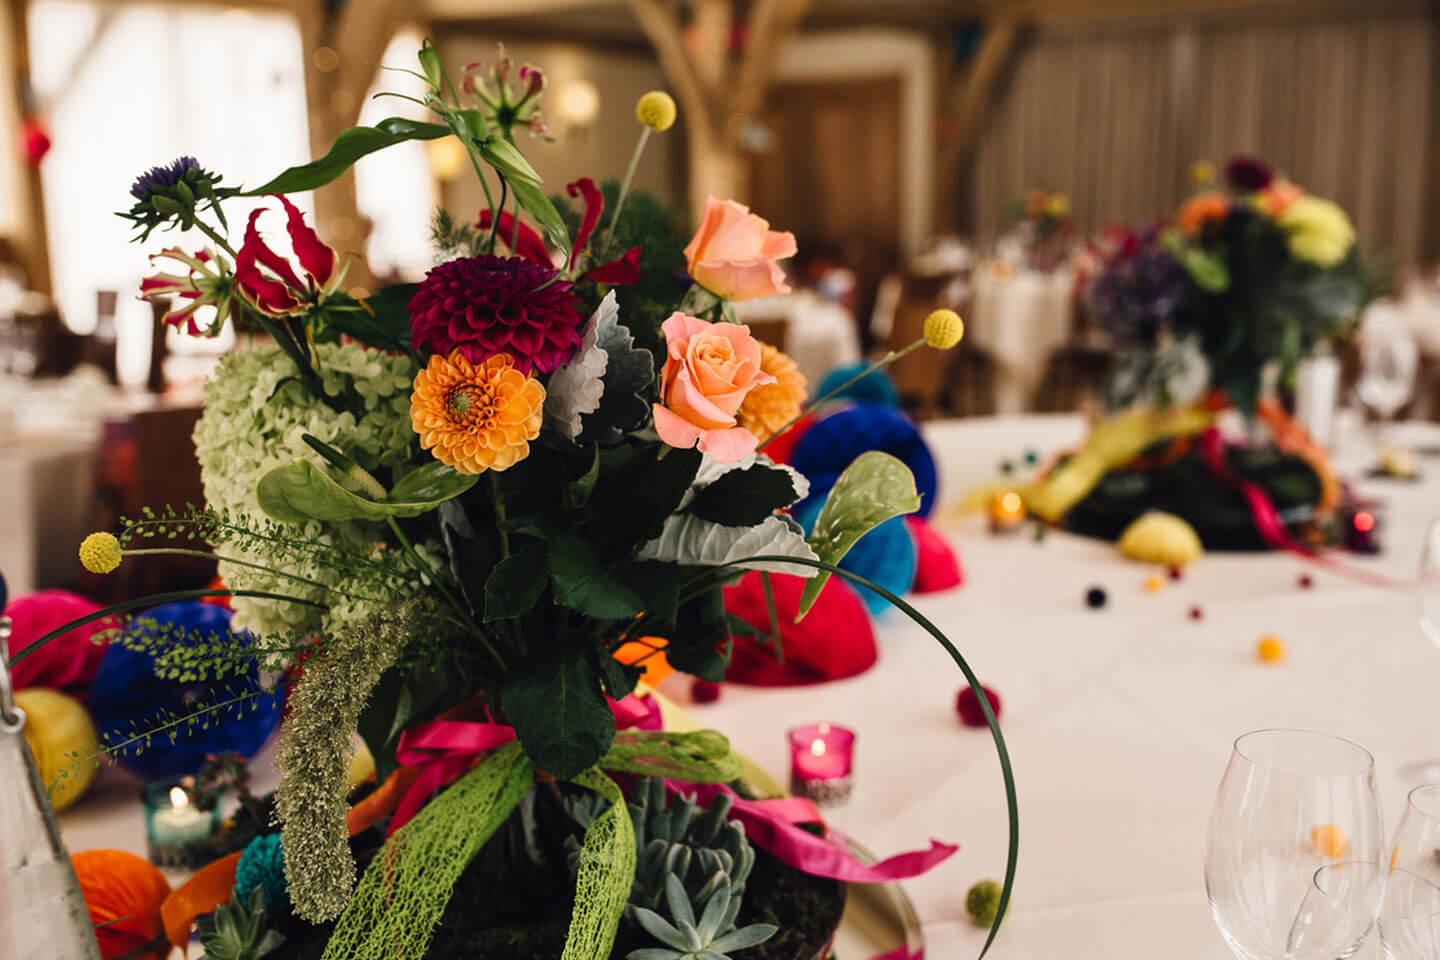 Vibrant floral table centrepieces were used to decorate the Moat Barn for the wedding breakfast